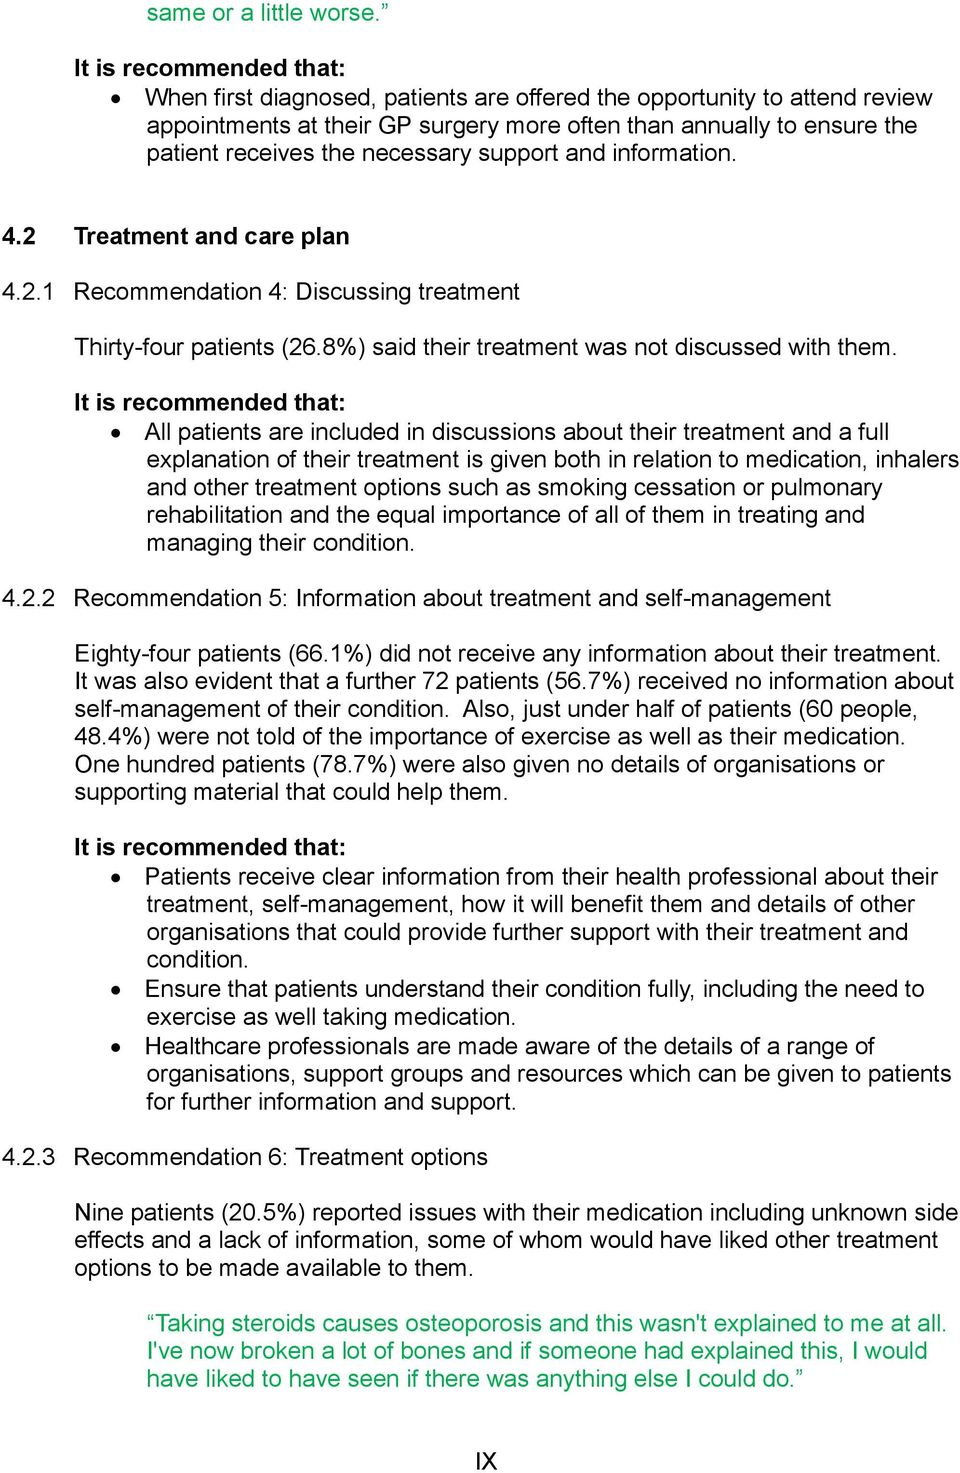 necessary support and information. 4.2 Treatment and care plan 4.2.1 Recommendation 4: Discussing treatment Thirty-four patients (26.8%) said their treatment was not discussed with them.